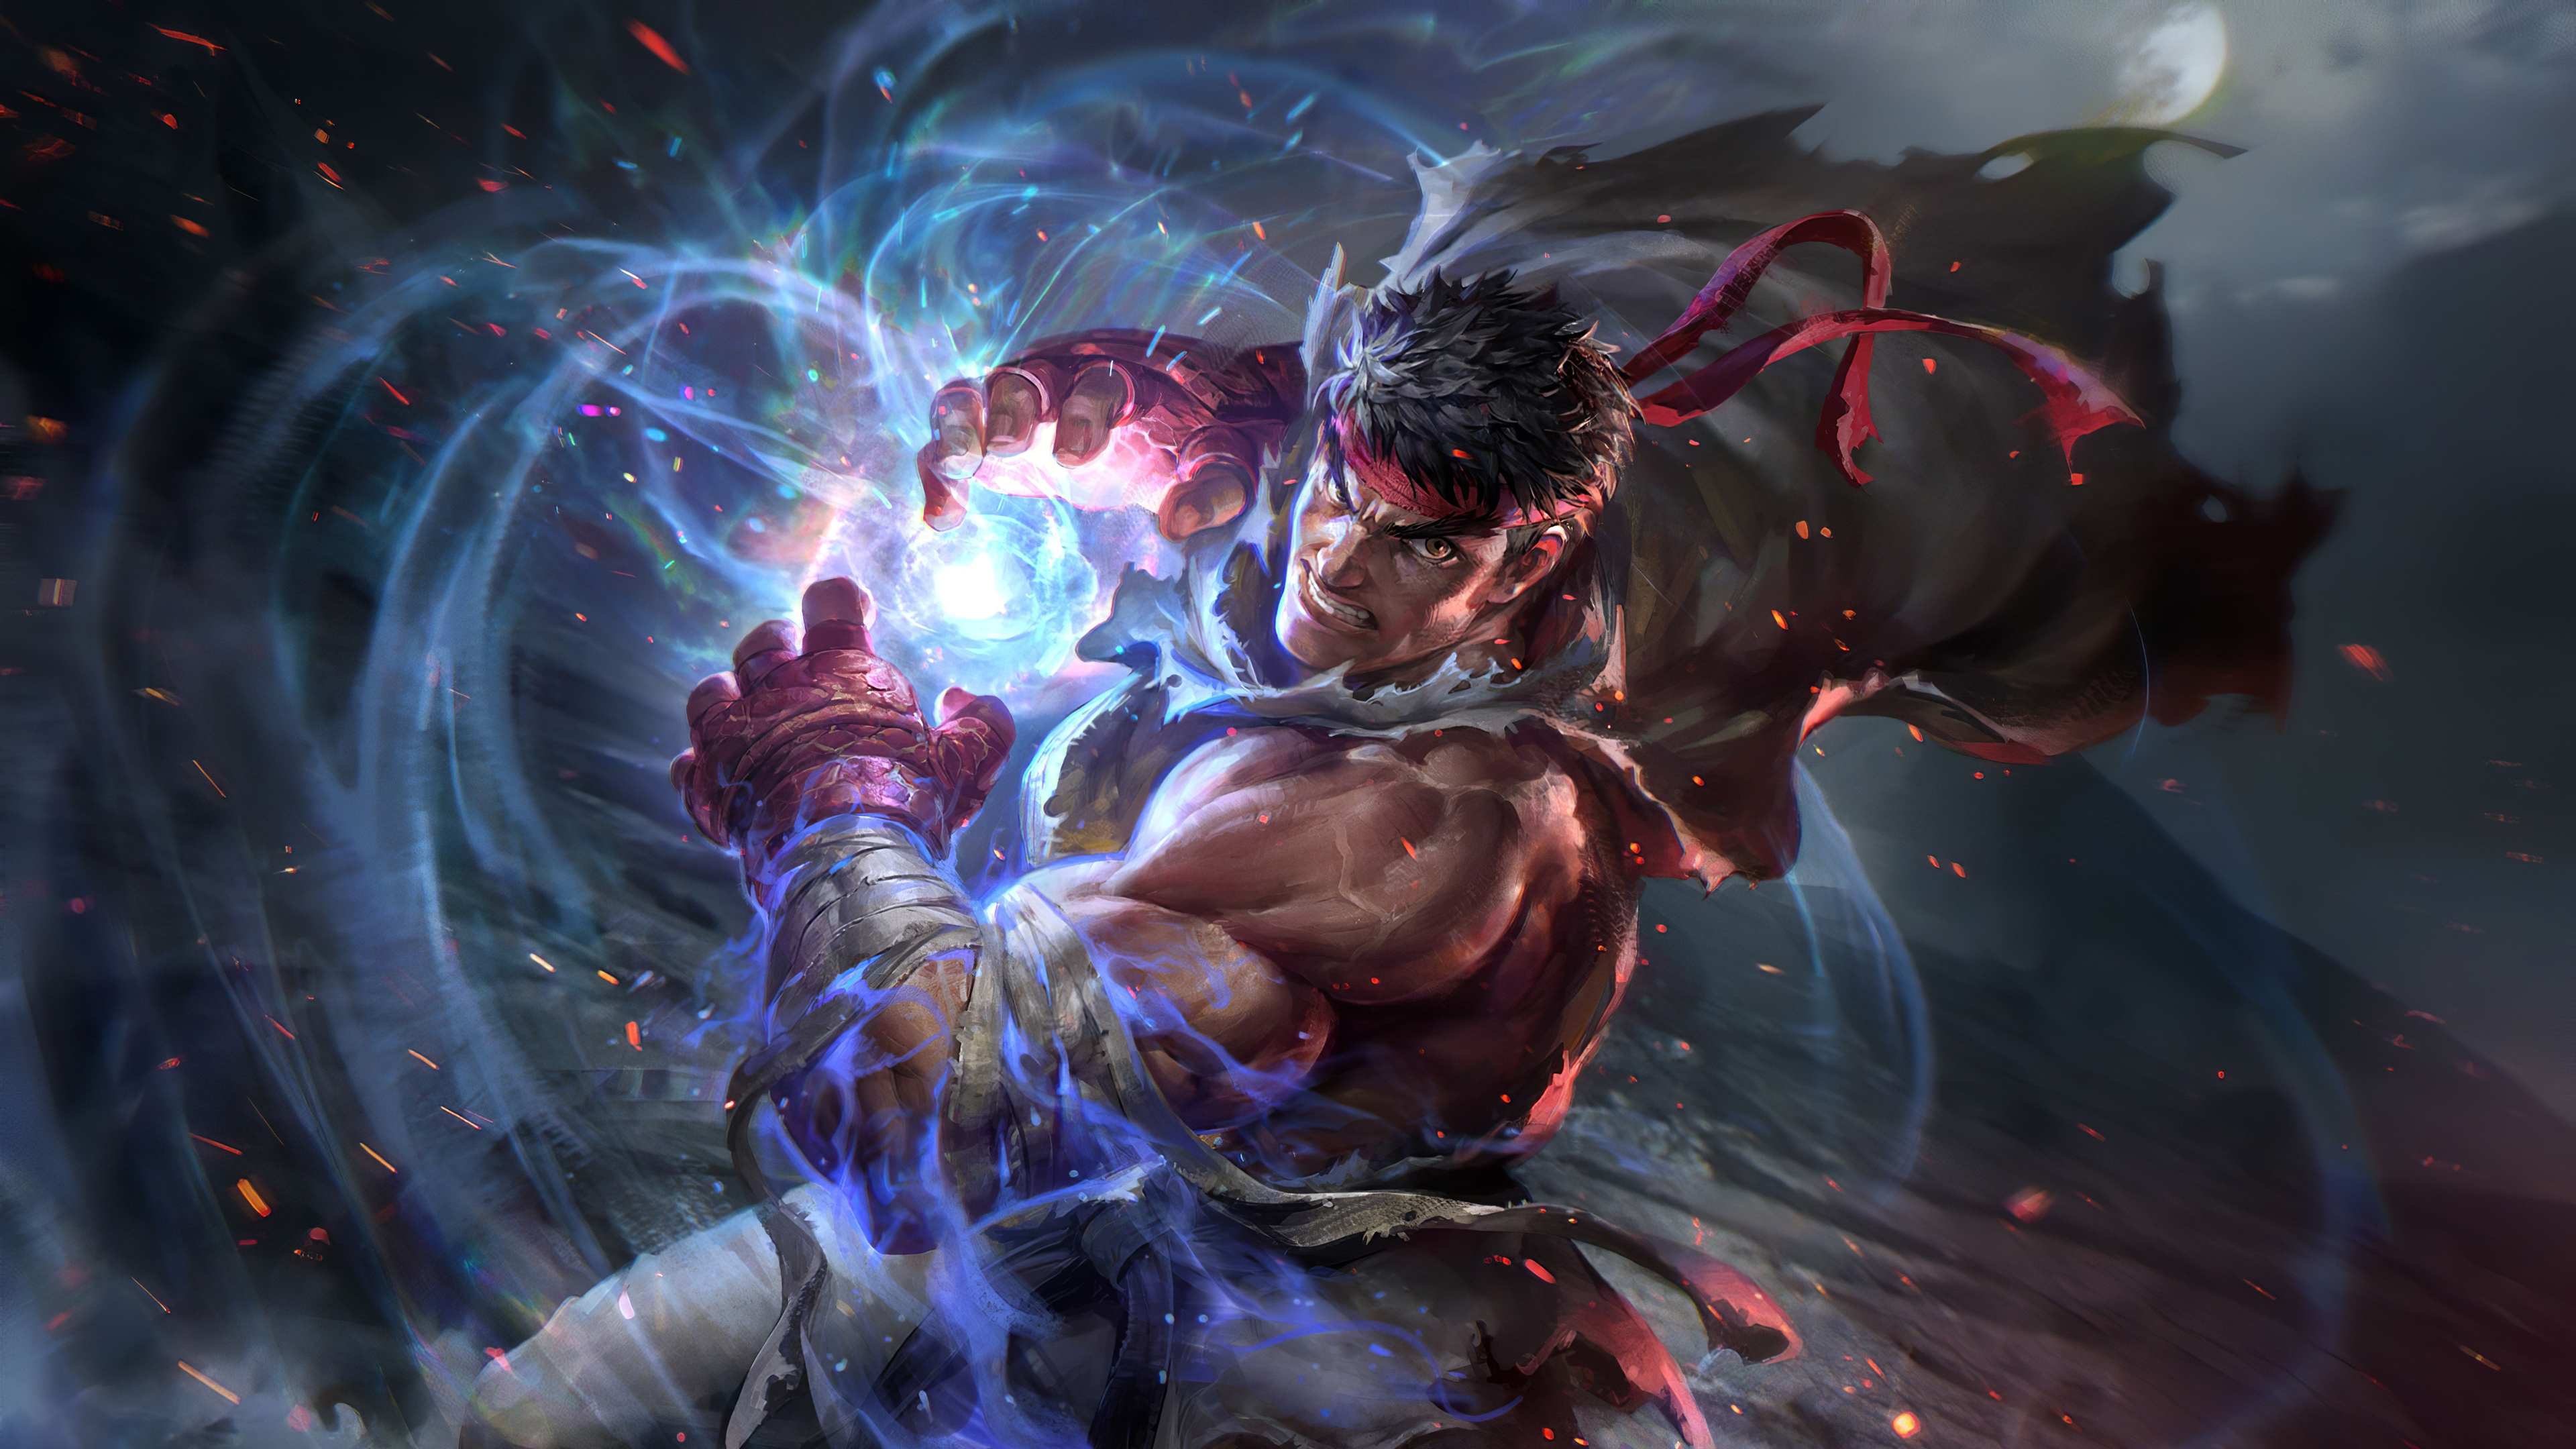 Ryu Street Fighter V 2020 4k Hd Games 4k Wallpapers Images